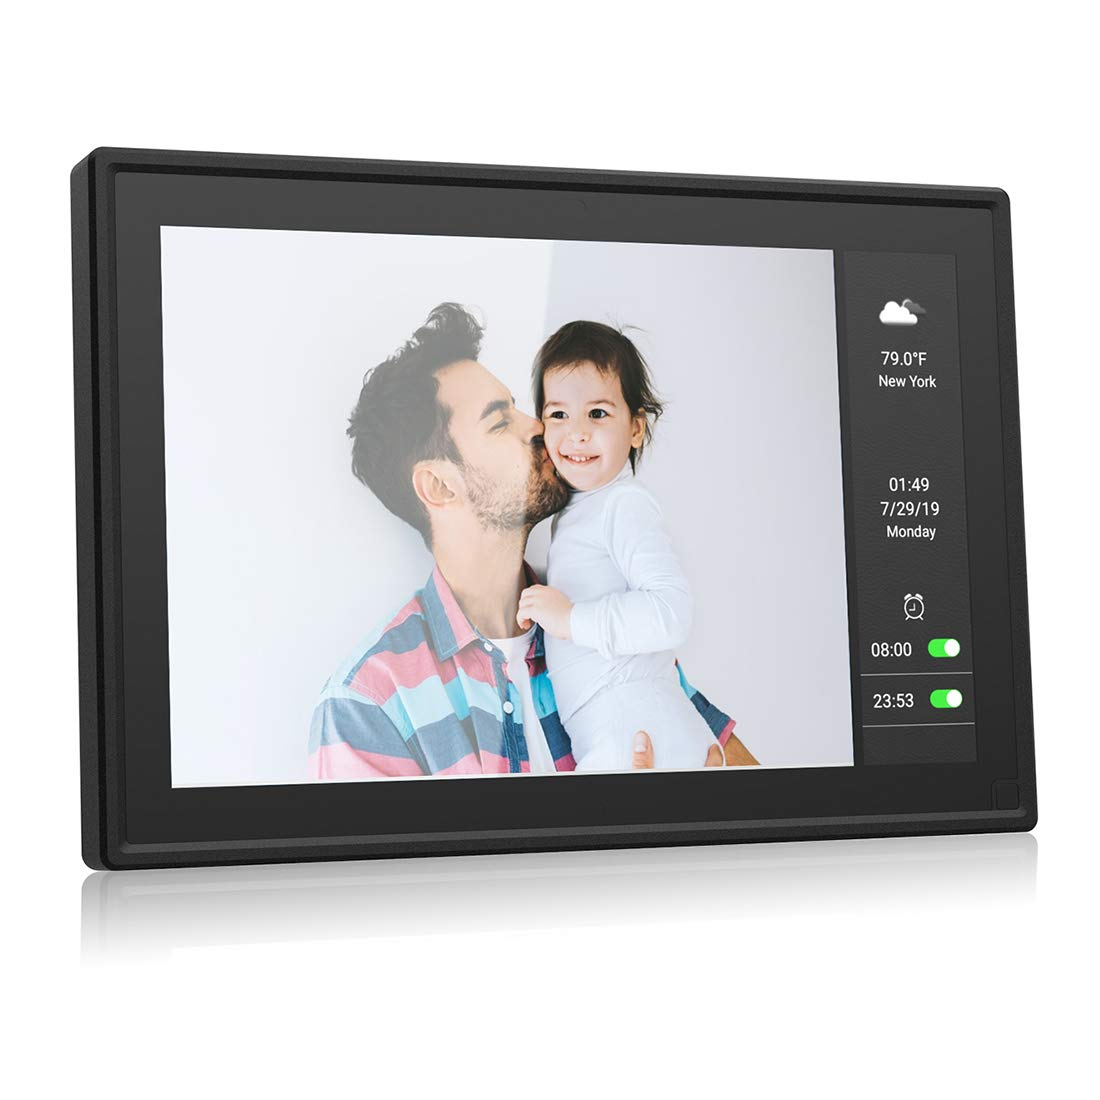 BSIMB Wifi Cloud Digital Picture Frame Digital Photo Frame Dual Display 9 Inch+5.5 Inch IPS Touch Screen Motion Sensor Sent Photos from Anywhere Support iOS/Android.Facebook.Twitter.Email W09 Plus 16G